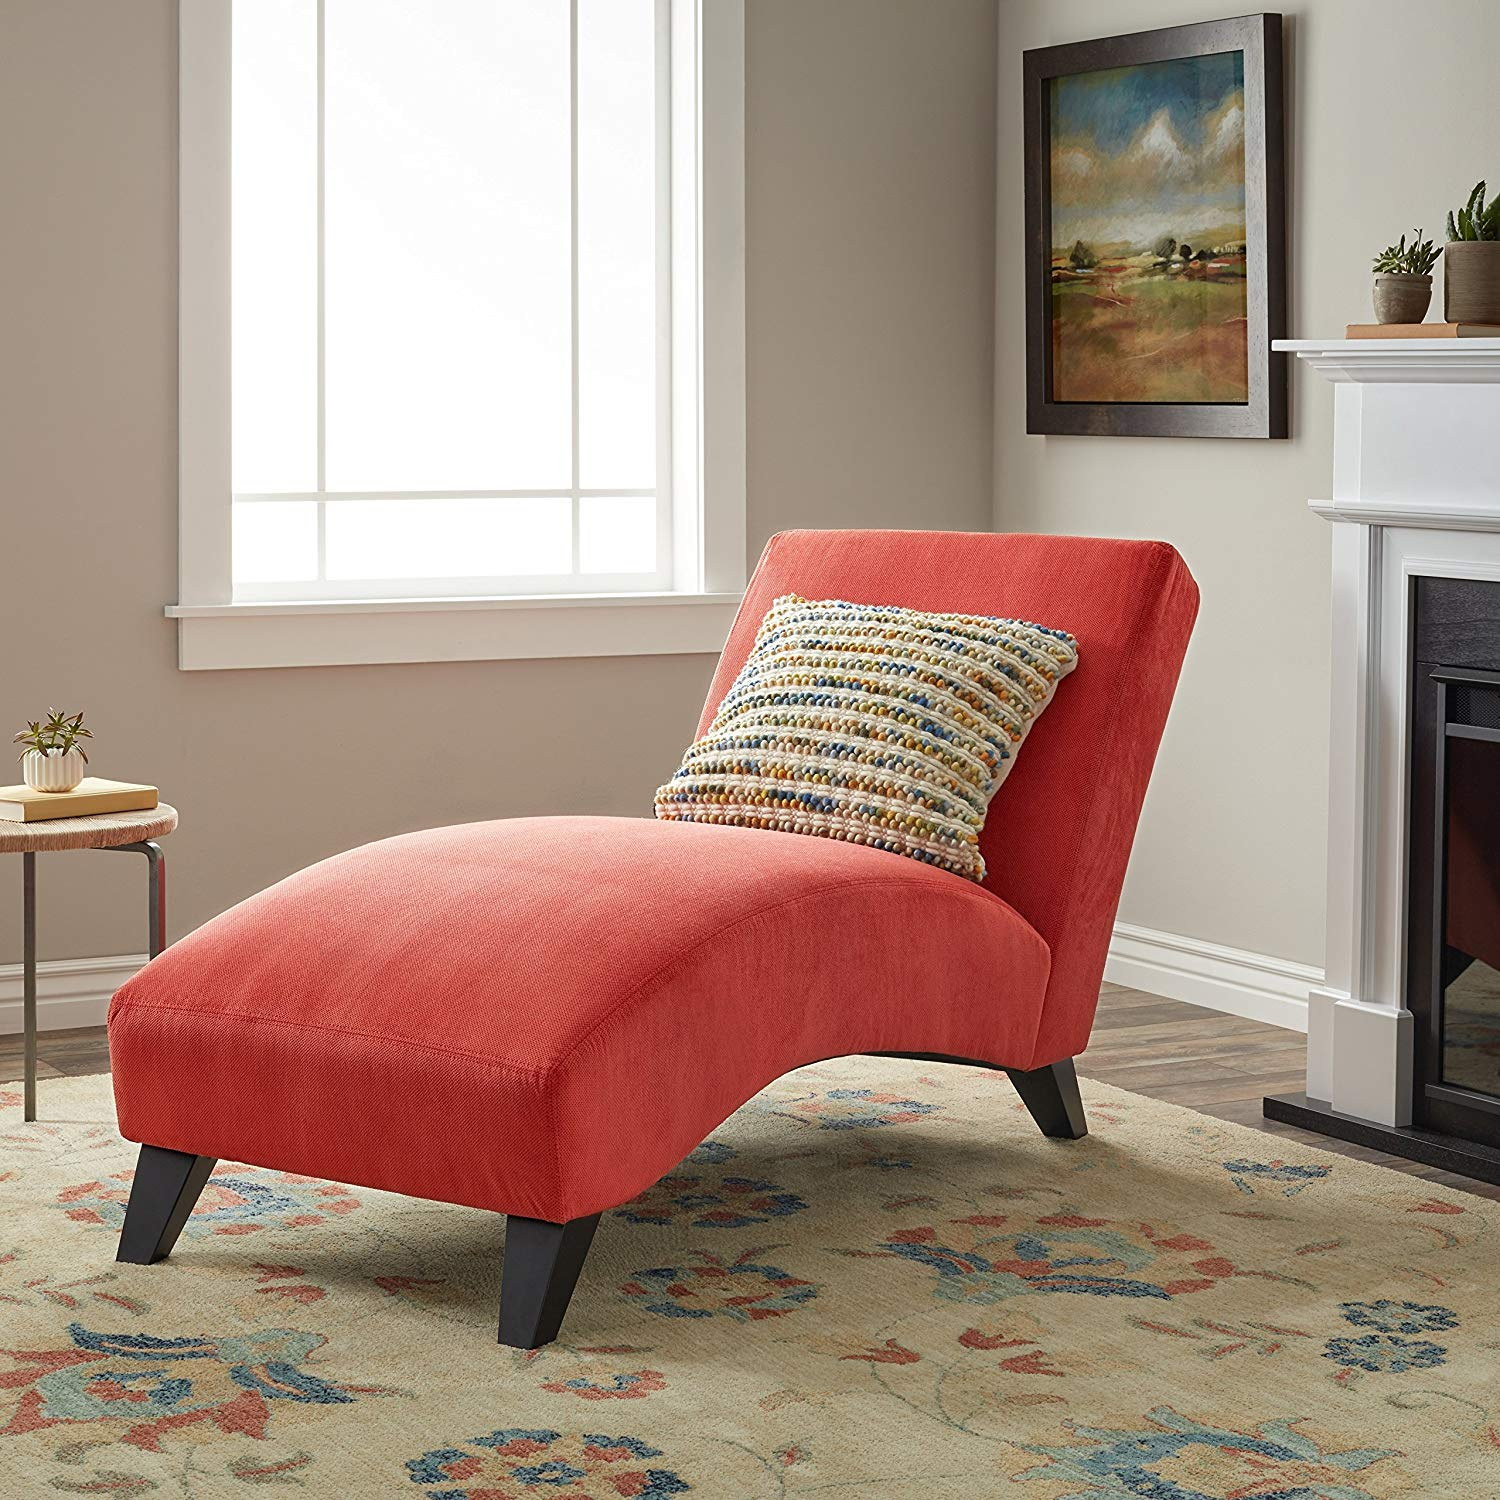 Modern Comfortable Chaise Lounge, 100-Percent Polyester Upholstery, Elegant with Sleek Lines, Foam Fill, Wood Frame, Assembly Required, Simple Design and Ergonomic Shape, Orange-Paprika Color